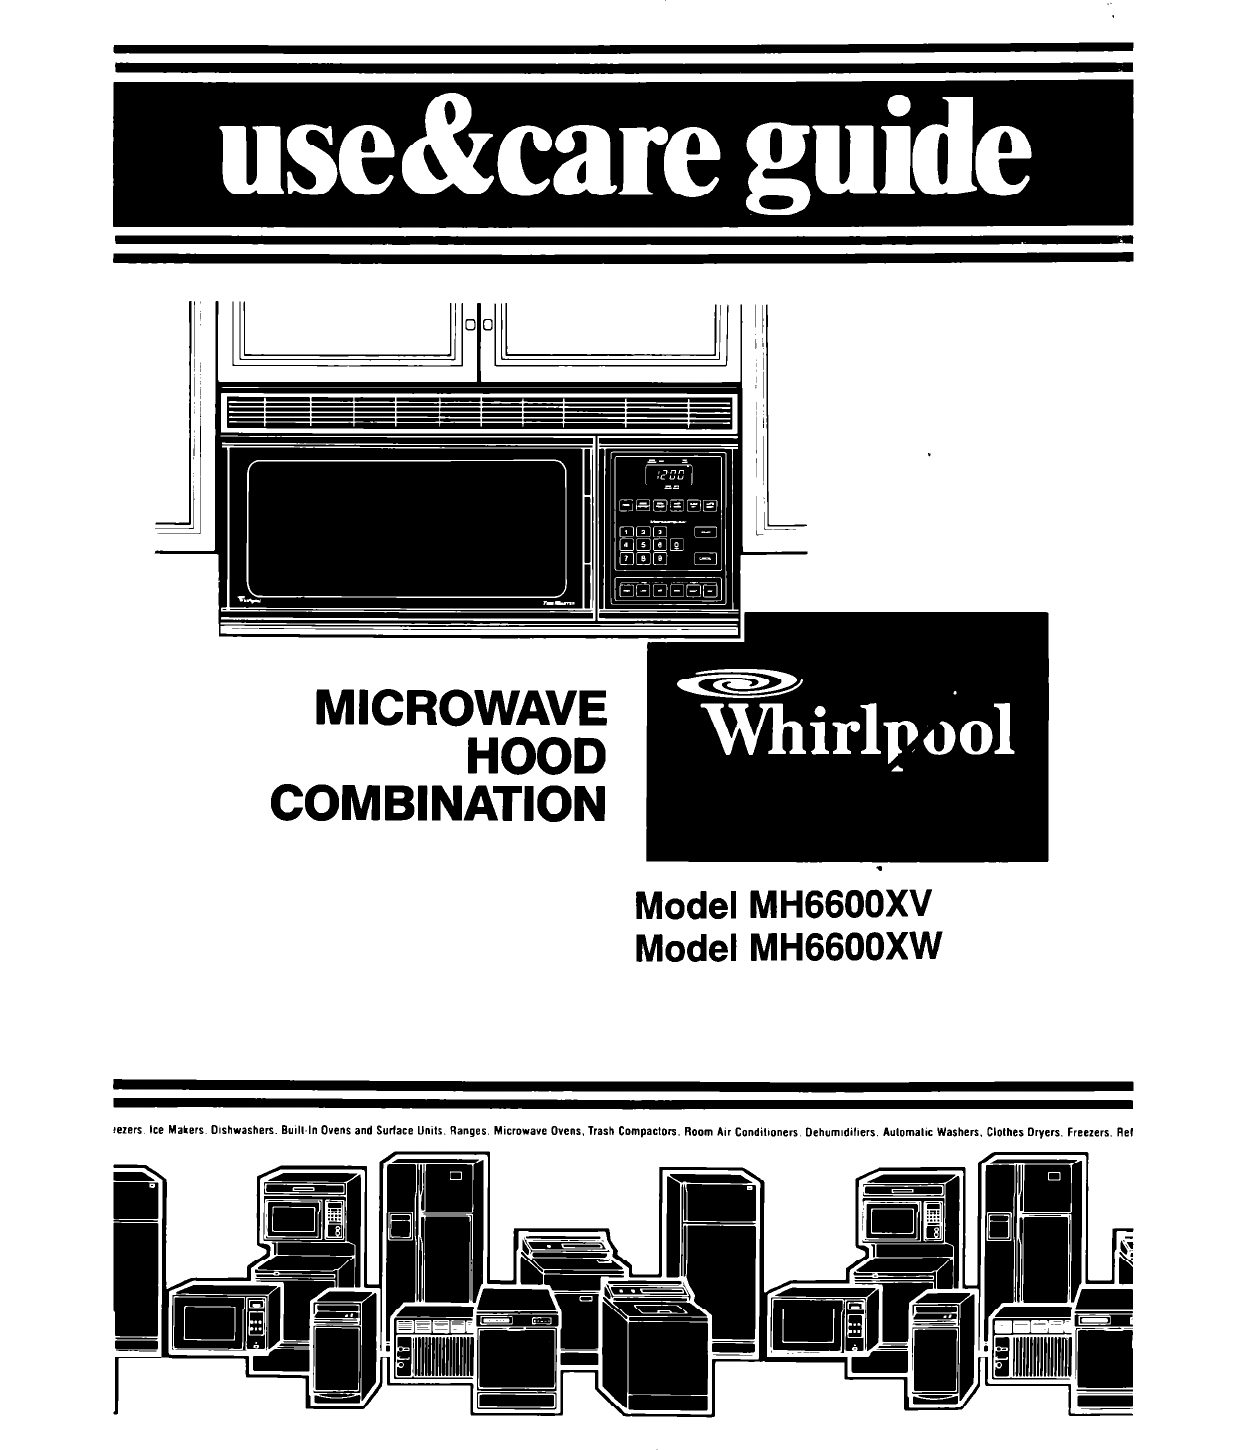 Whirlpool Microwave Oven MH6600XW User Guide